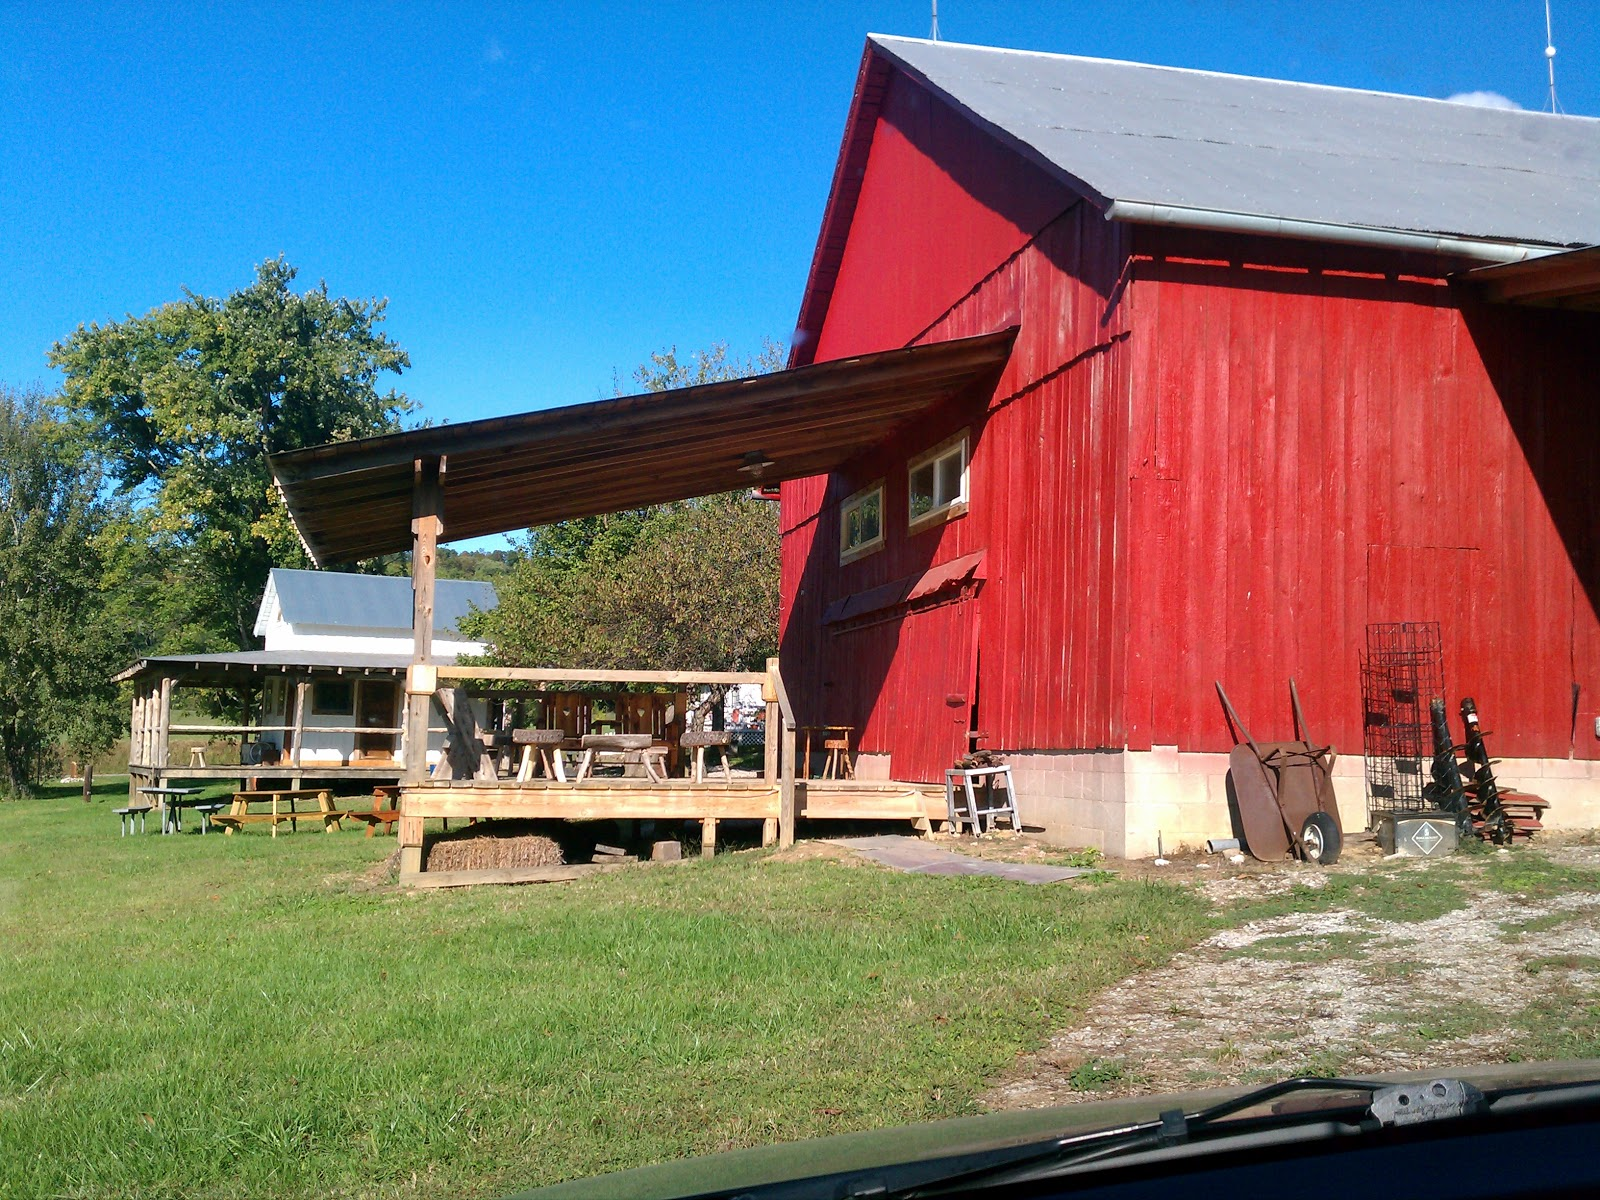 Winery Bed And Breakfast In Evansville Indiana